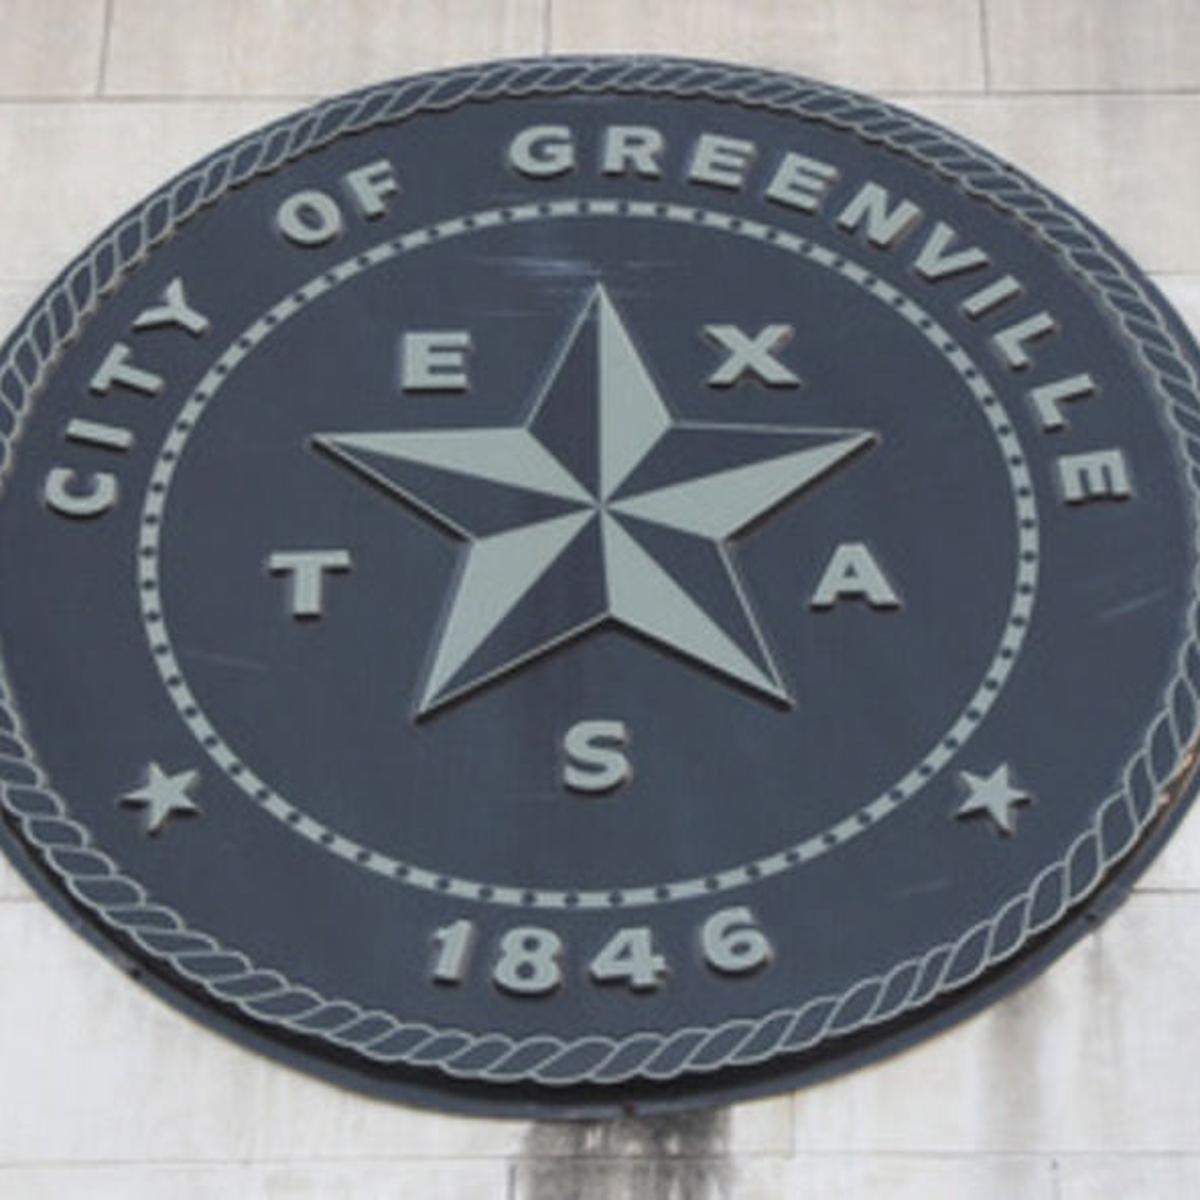 Proposed Greenville budget includes 3-cent increase to property tax